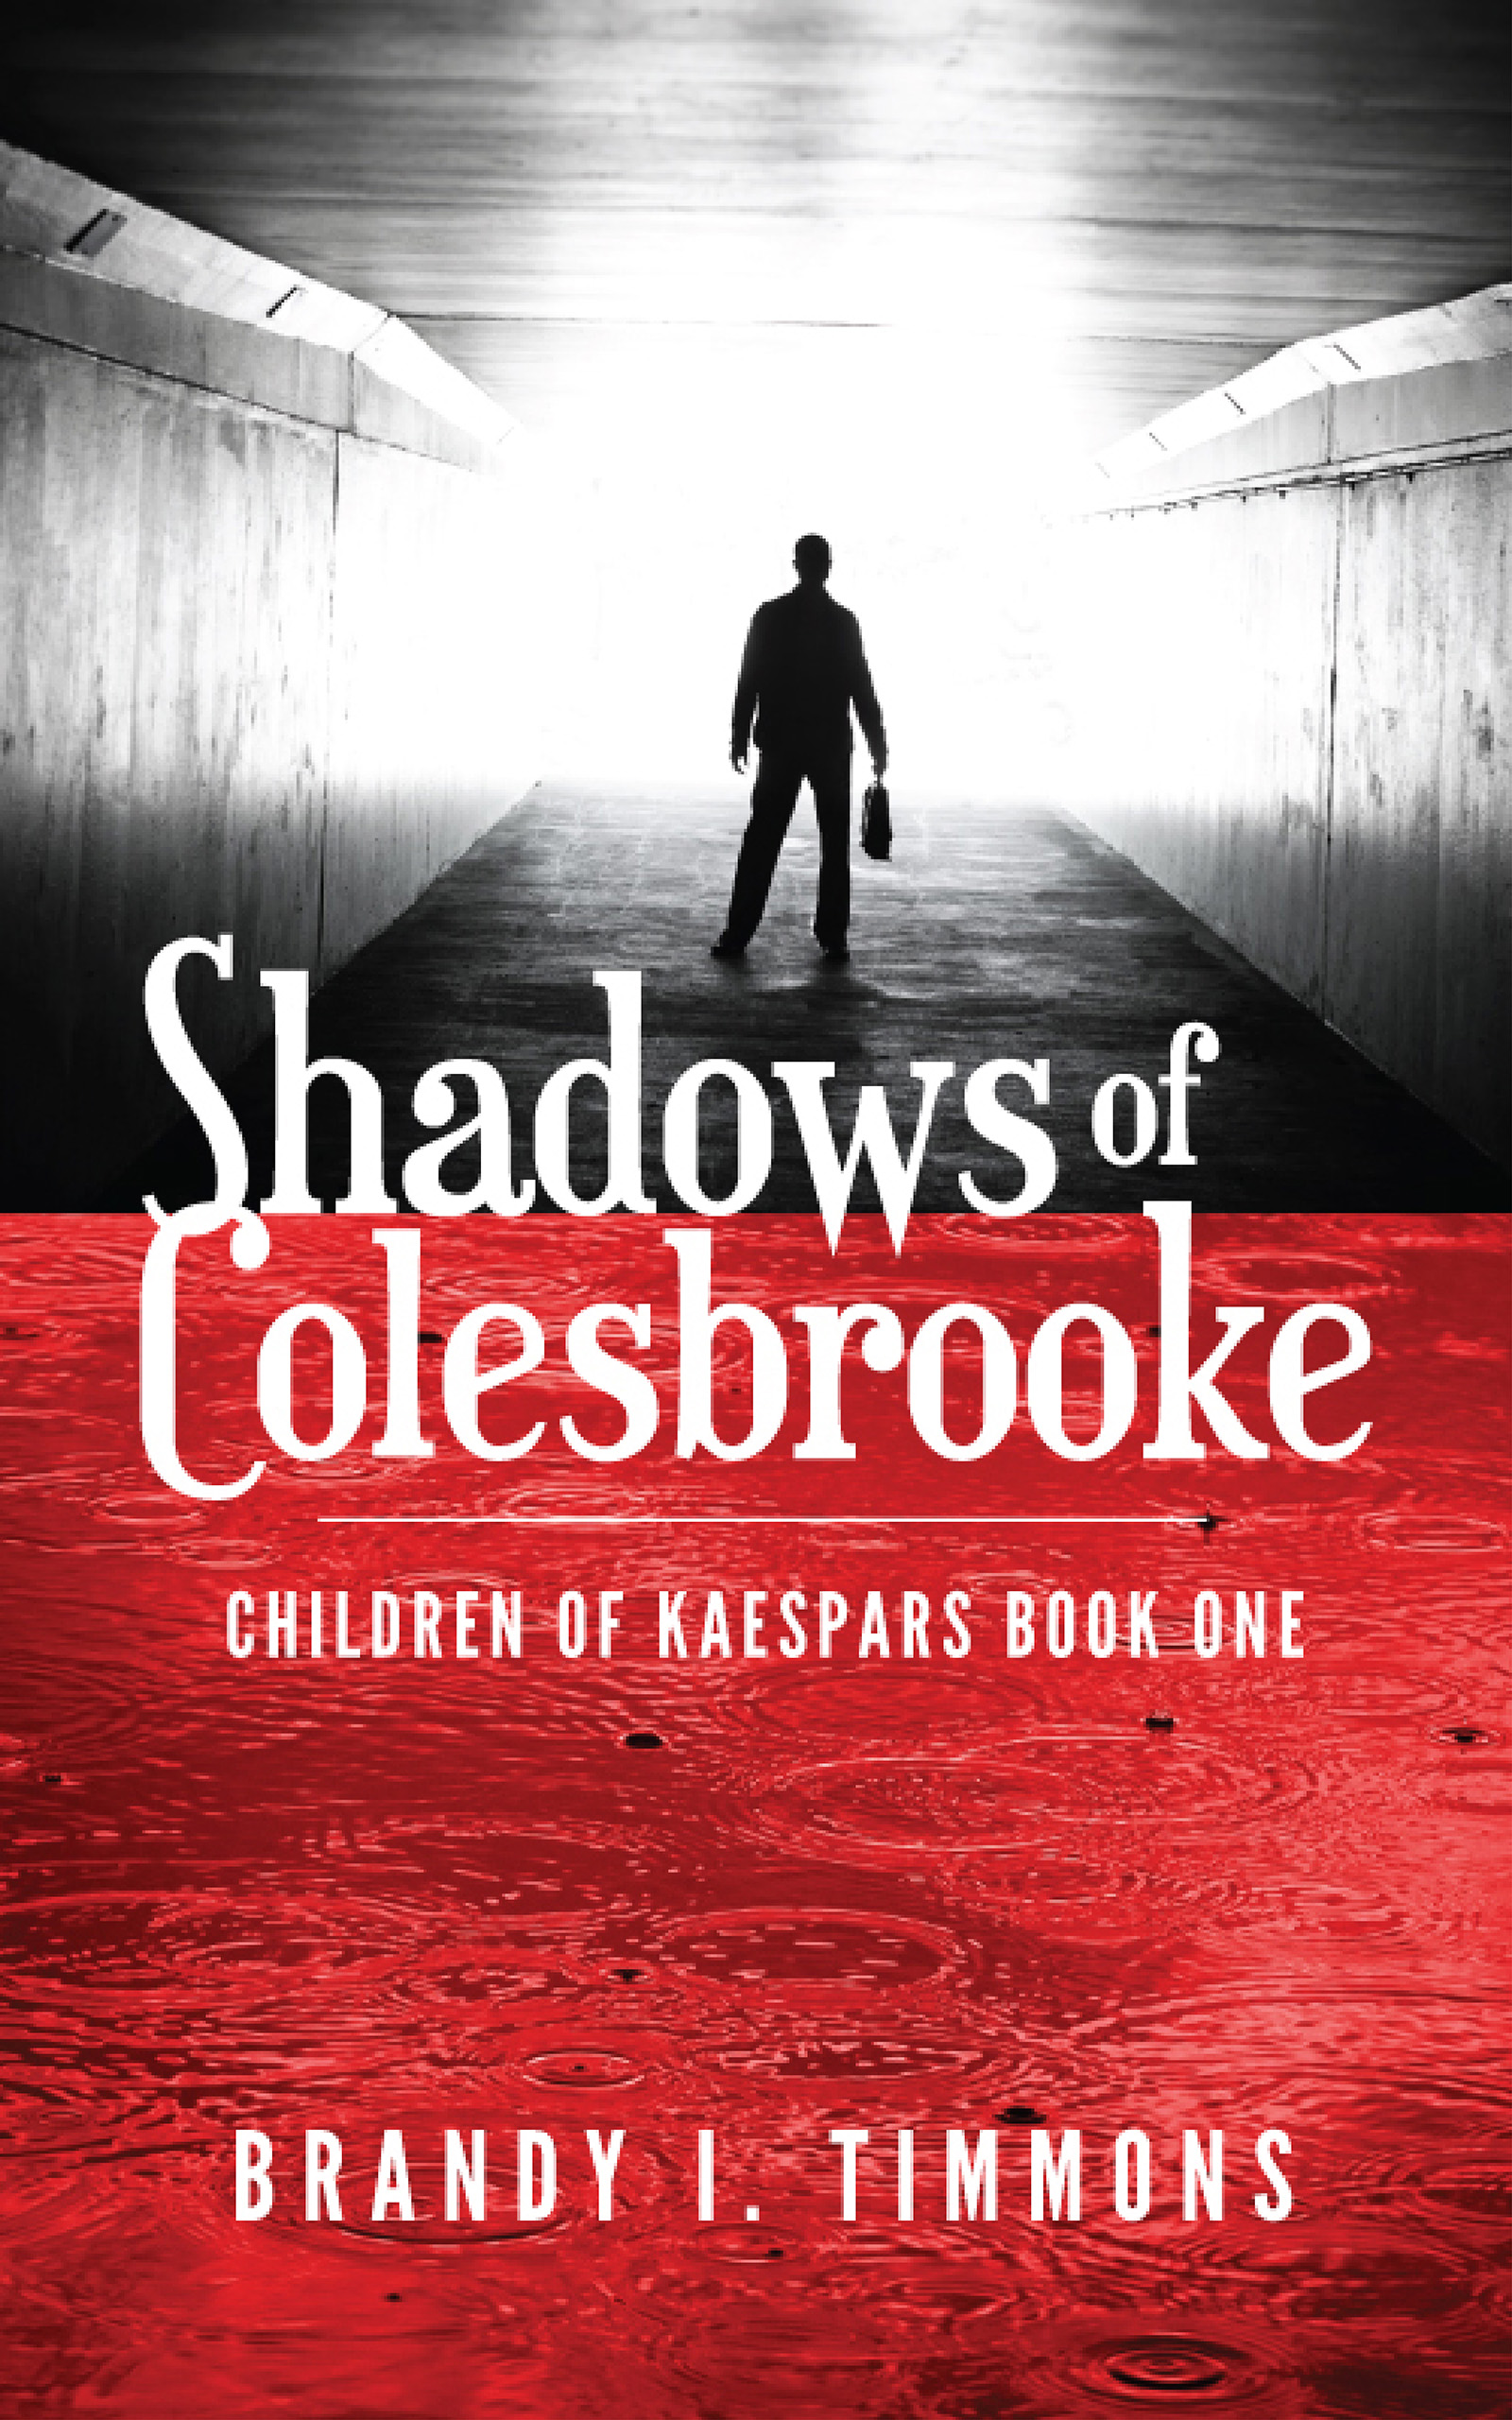 Shadows of Colesbrooke by Brandy I Timmons now on Amazon